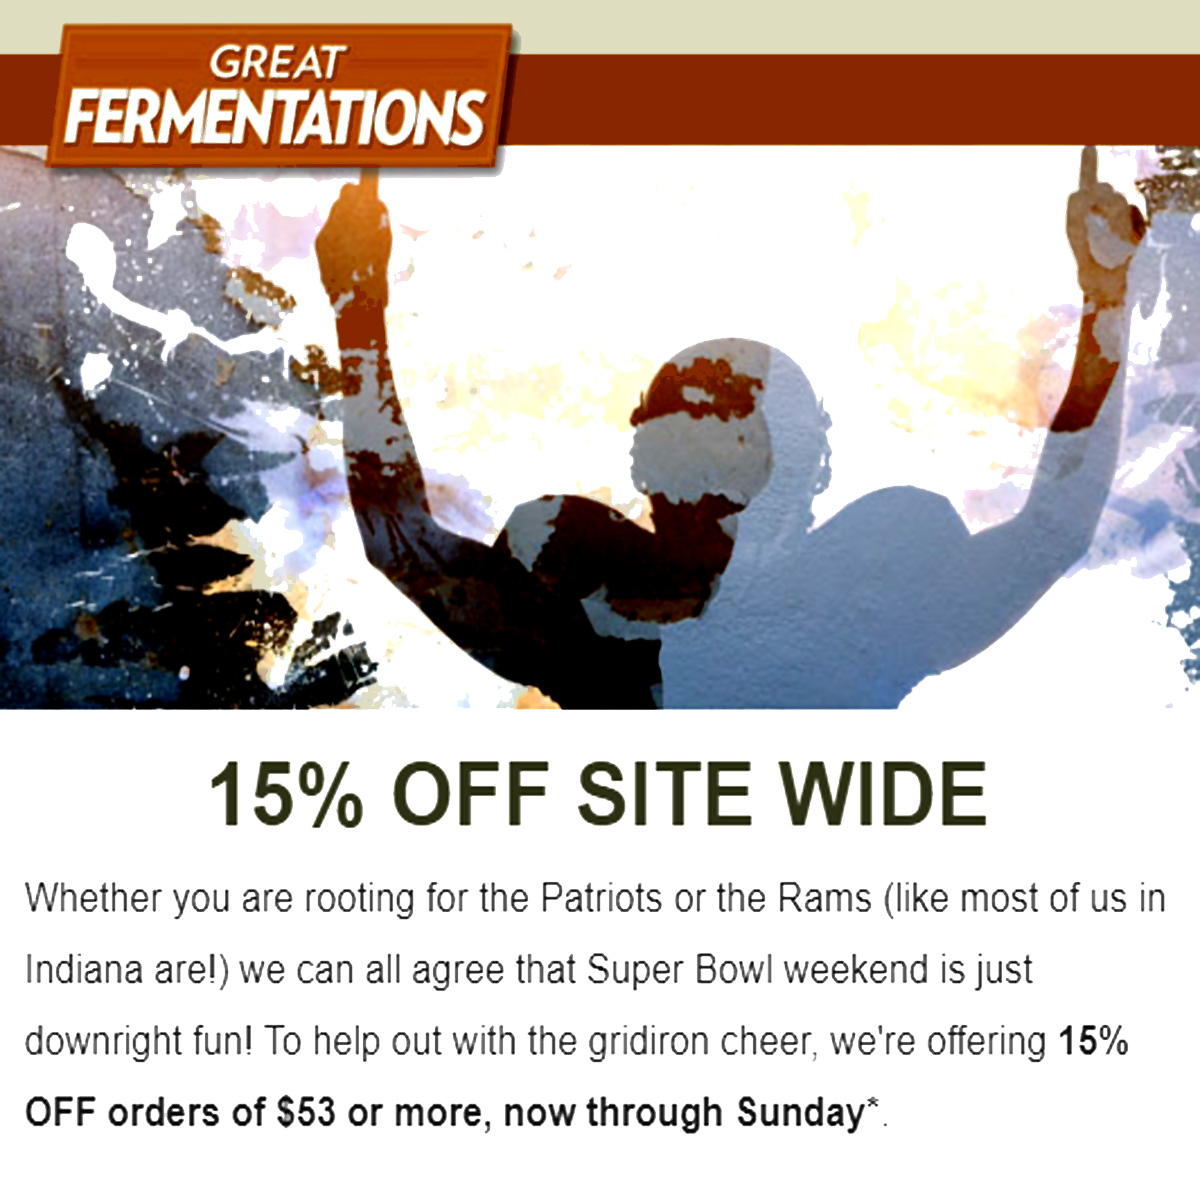 Home Wine Making Coupon Codes for Save 15% Off Site Wide at Great Fermentations With Promo Code Coupon Code